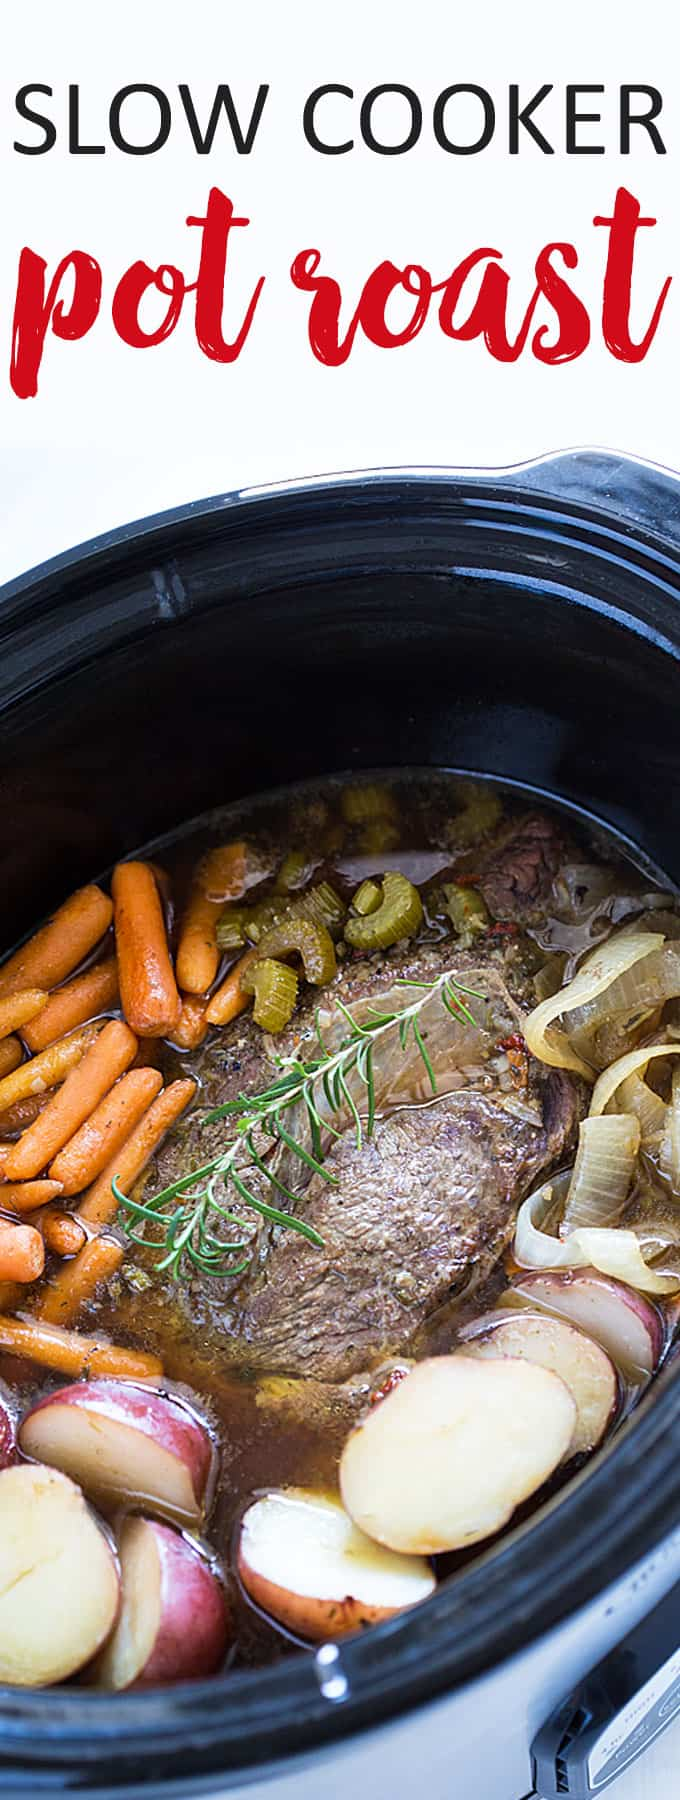 A cooked roast with vegetables in an oval slow cooker.